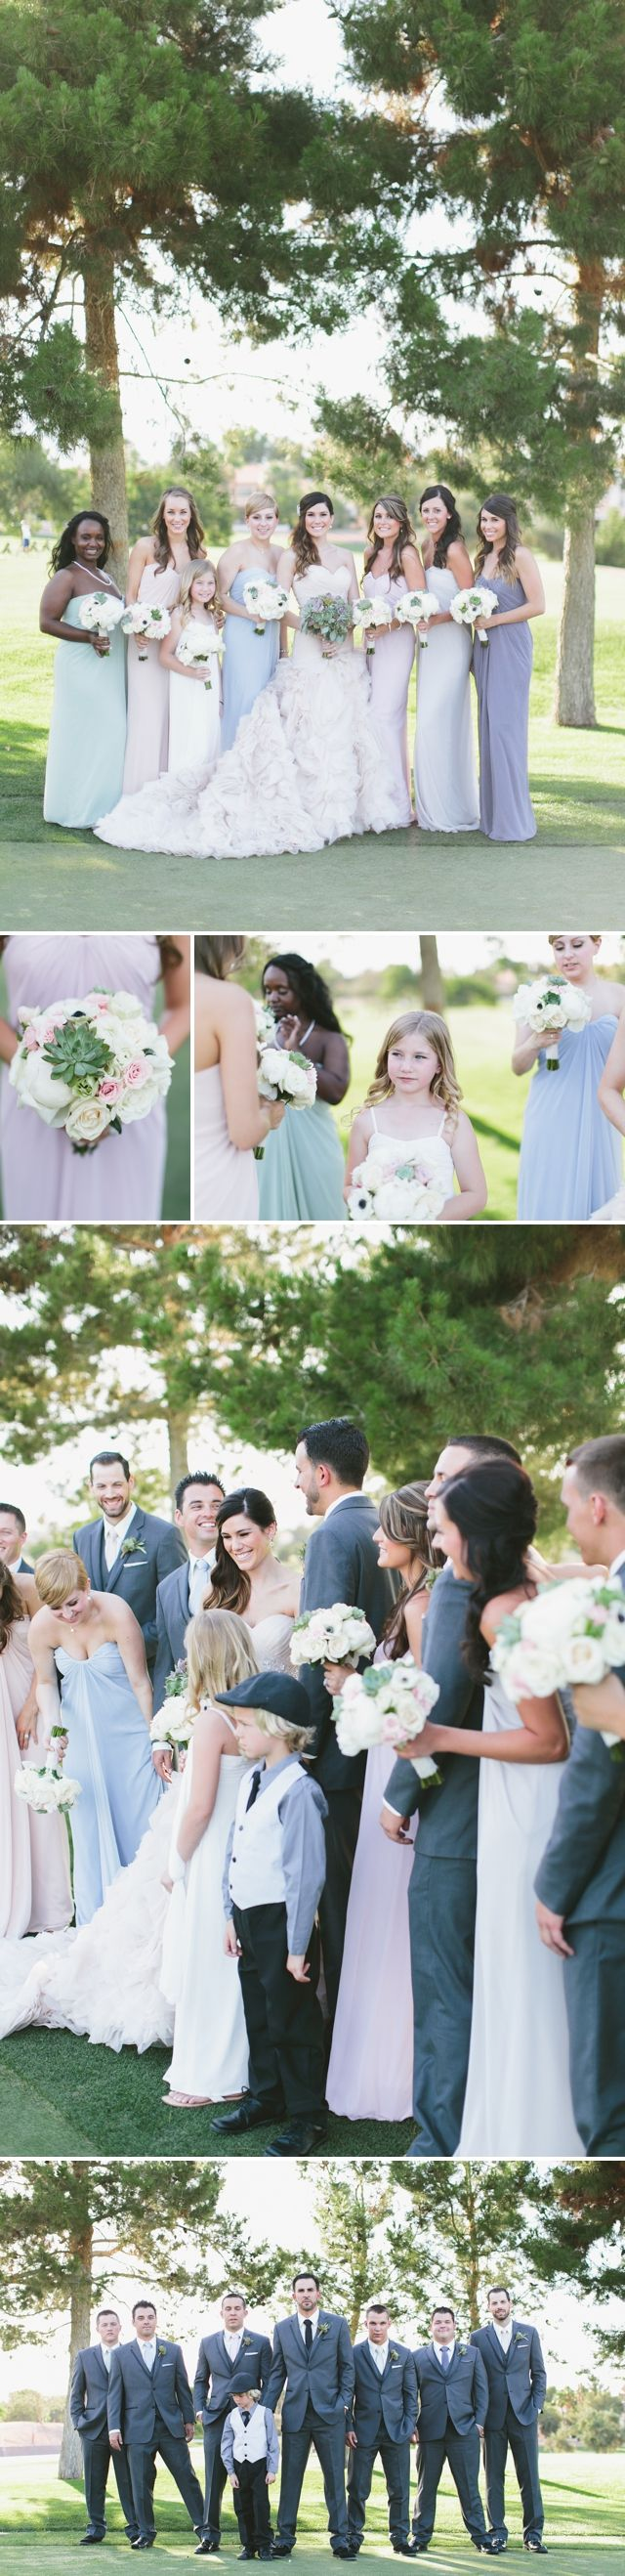 Canyon Gate Country Club Wedding | Meg Ruth Photo | Layers of Lovely | Succulent Bouquet | Pink wedding dress | Muted Bridesmaid Dresses | Different color Bridesmaid Dresses | Las Vegas Wedding